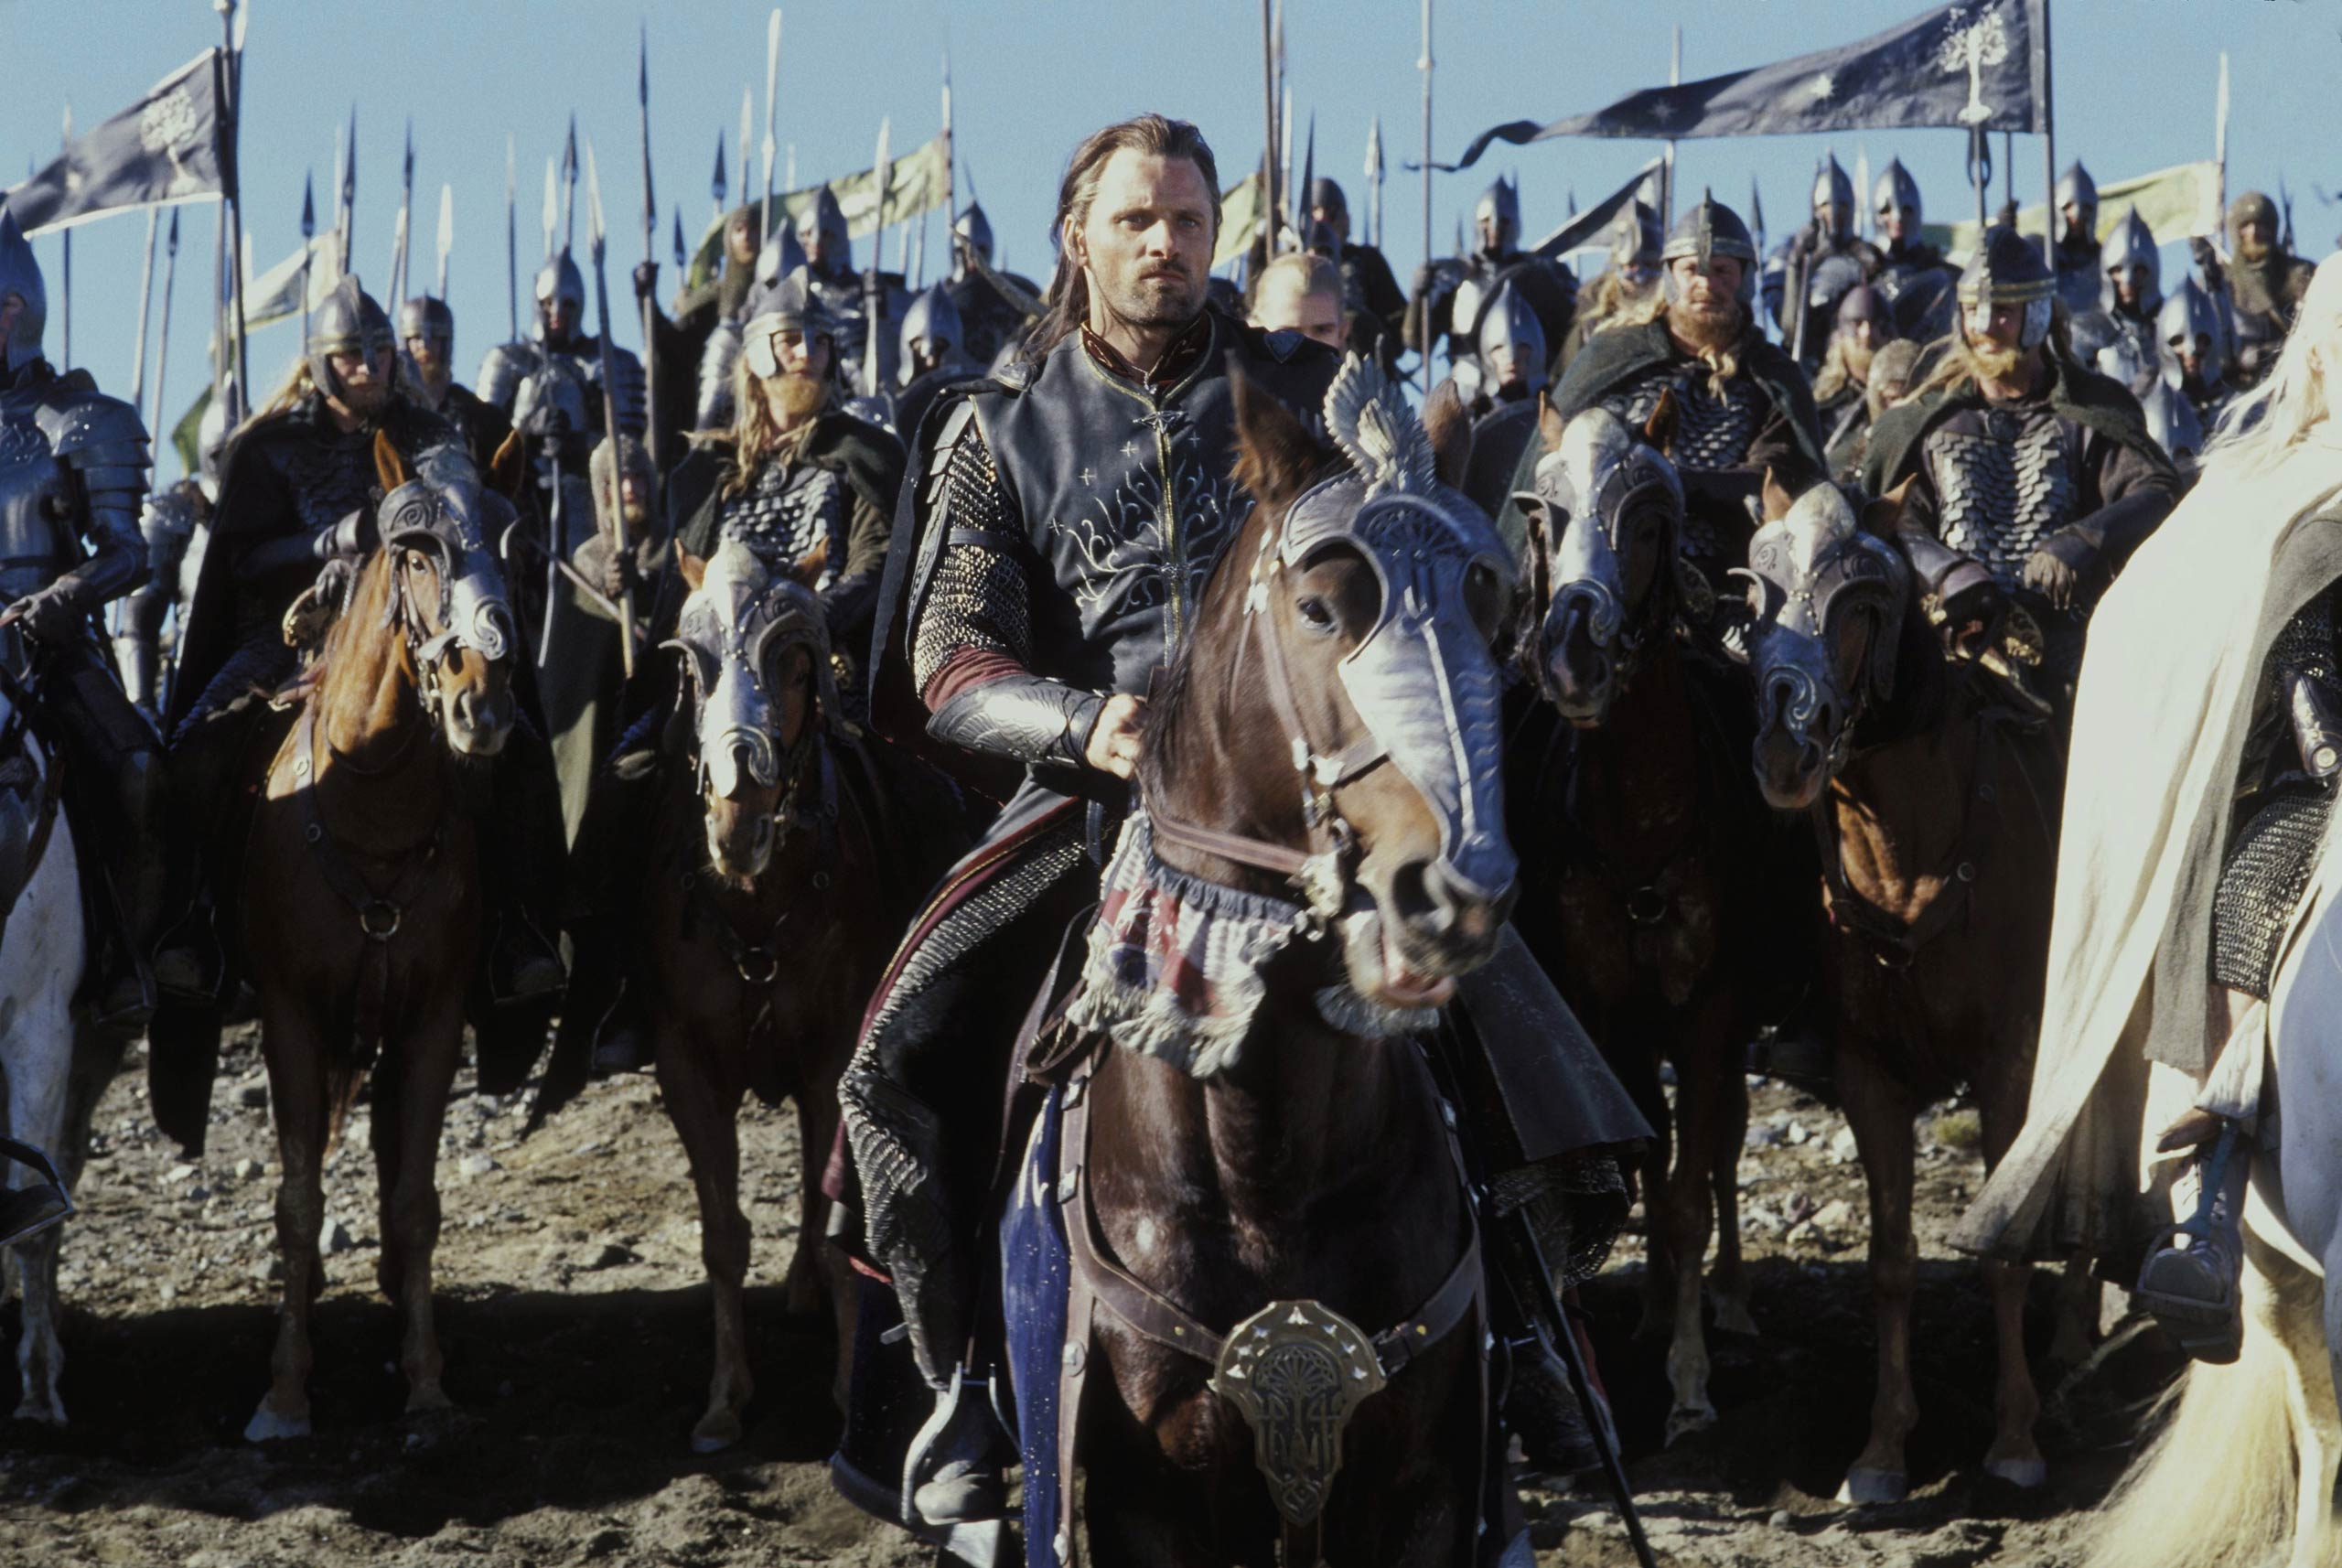 Viggo Mortensen as Aragorn in 'The Lord of the Rings: The Return of the King'